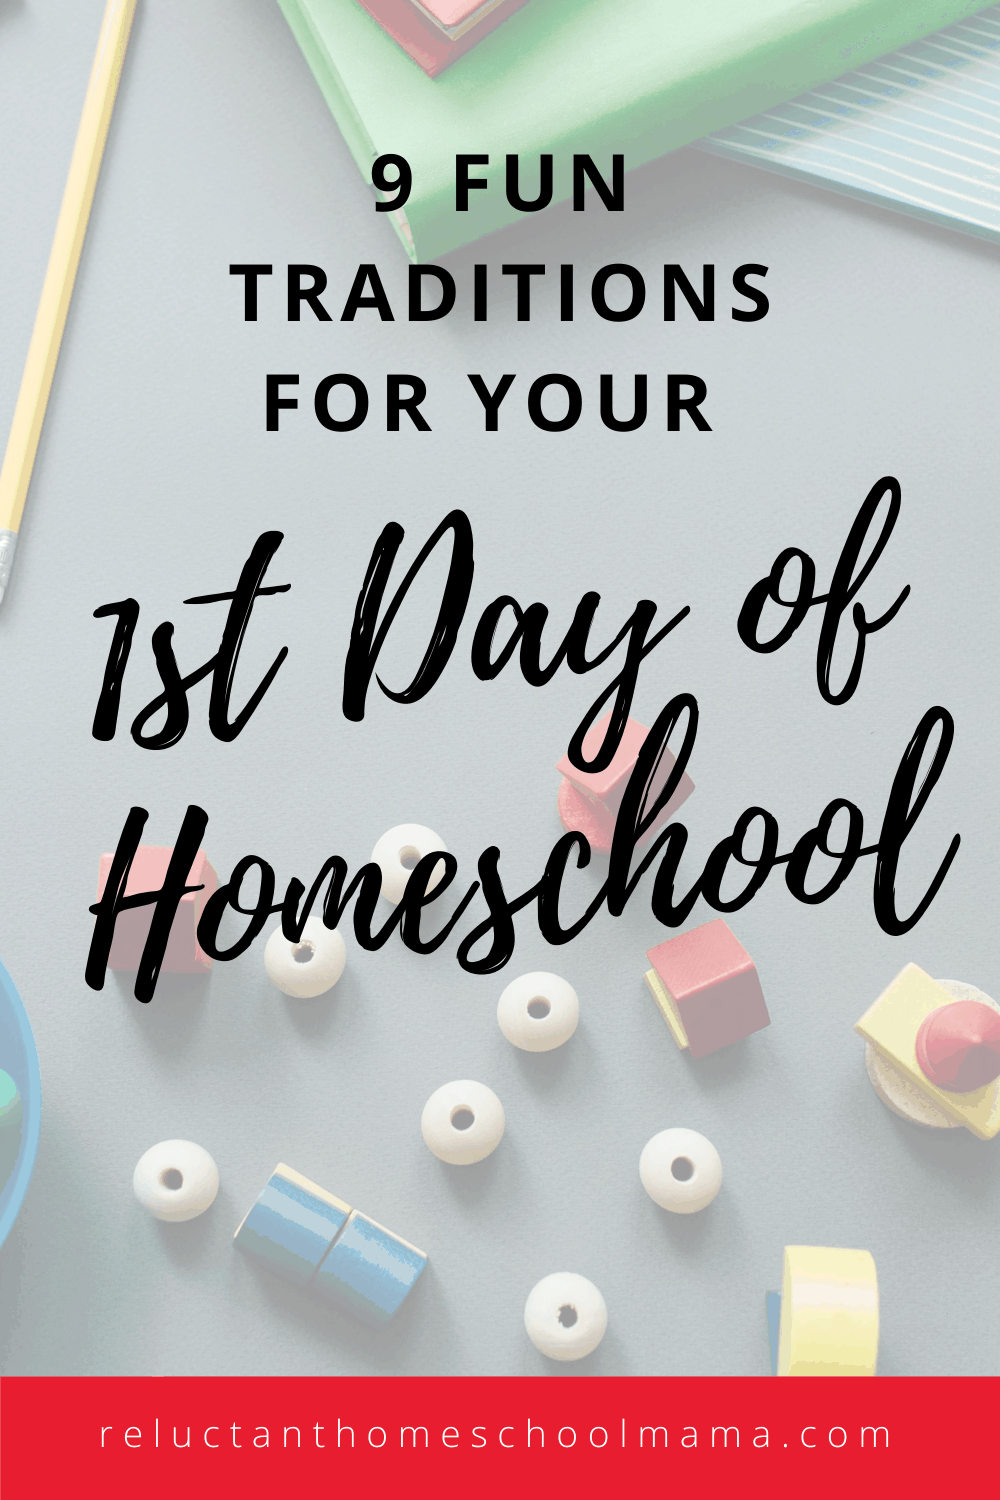 9 Traditions to Make Your First Day of Homeschool Amazing